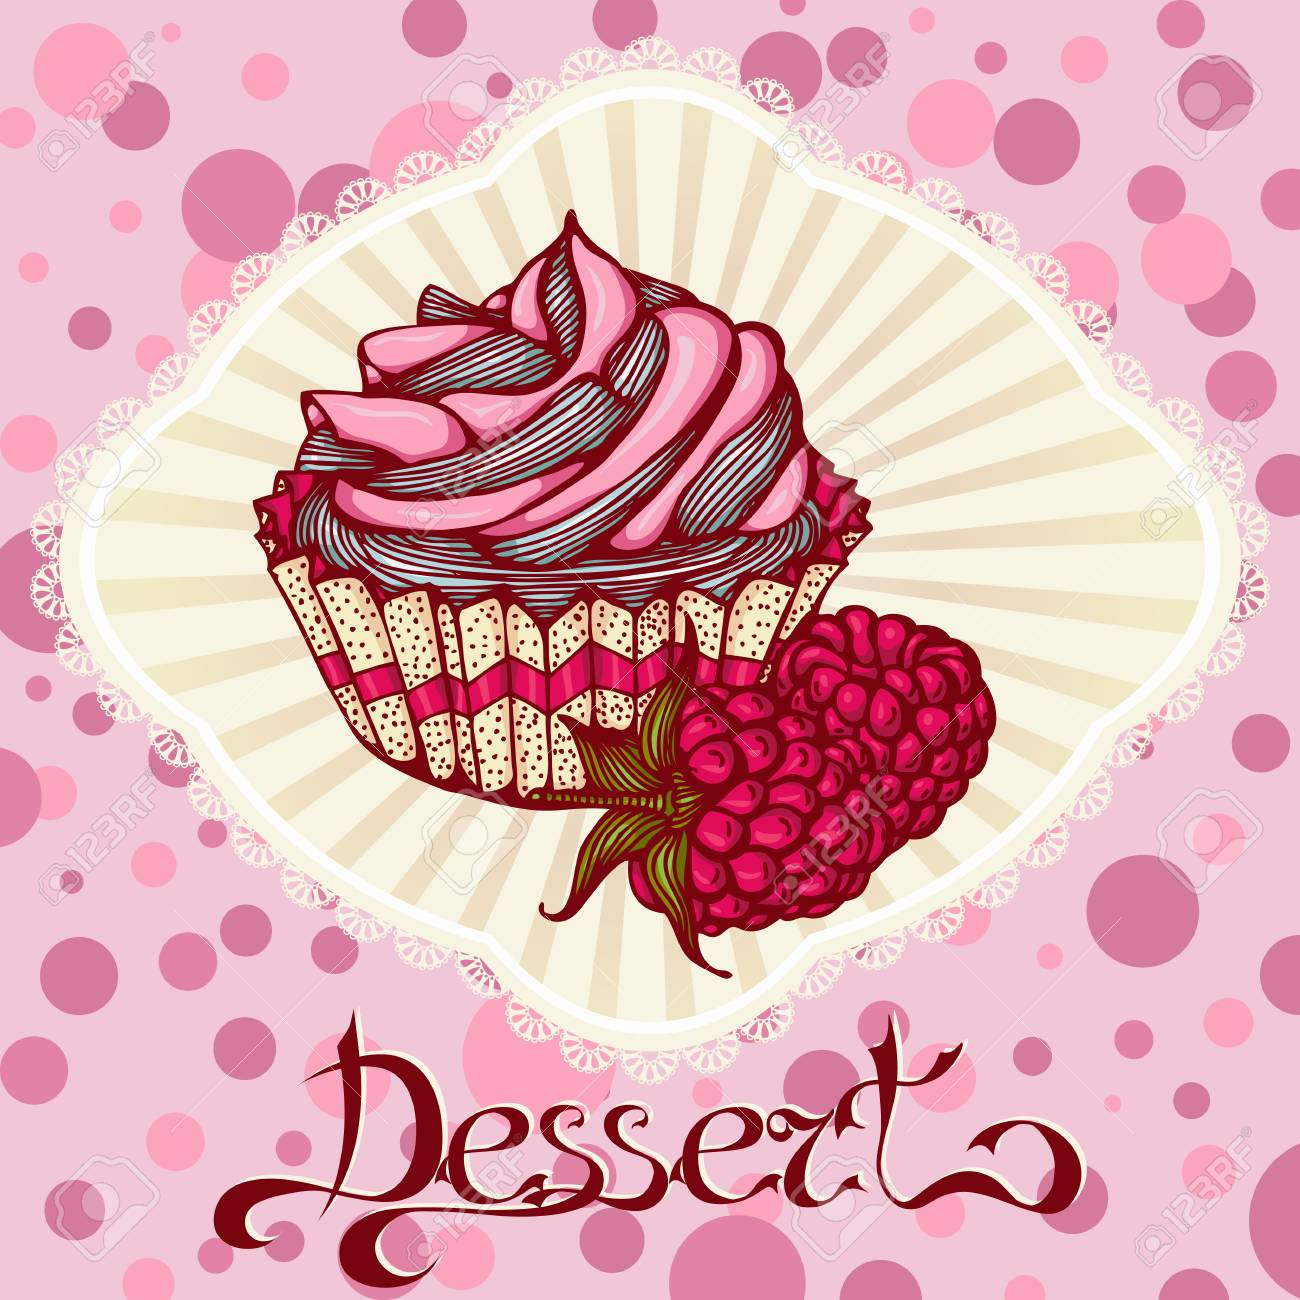 Color Graphic Card With Cupcake And Raspberries Design For Menu